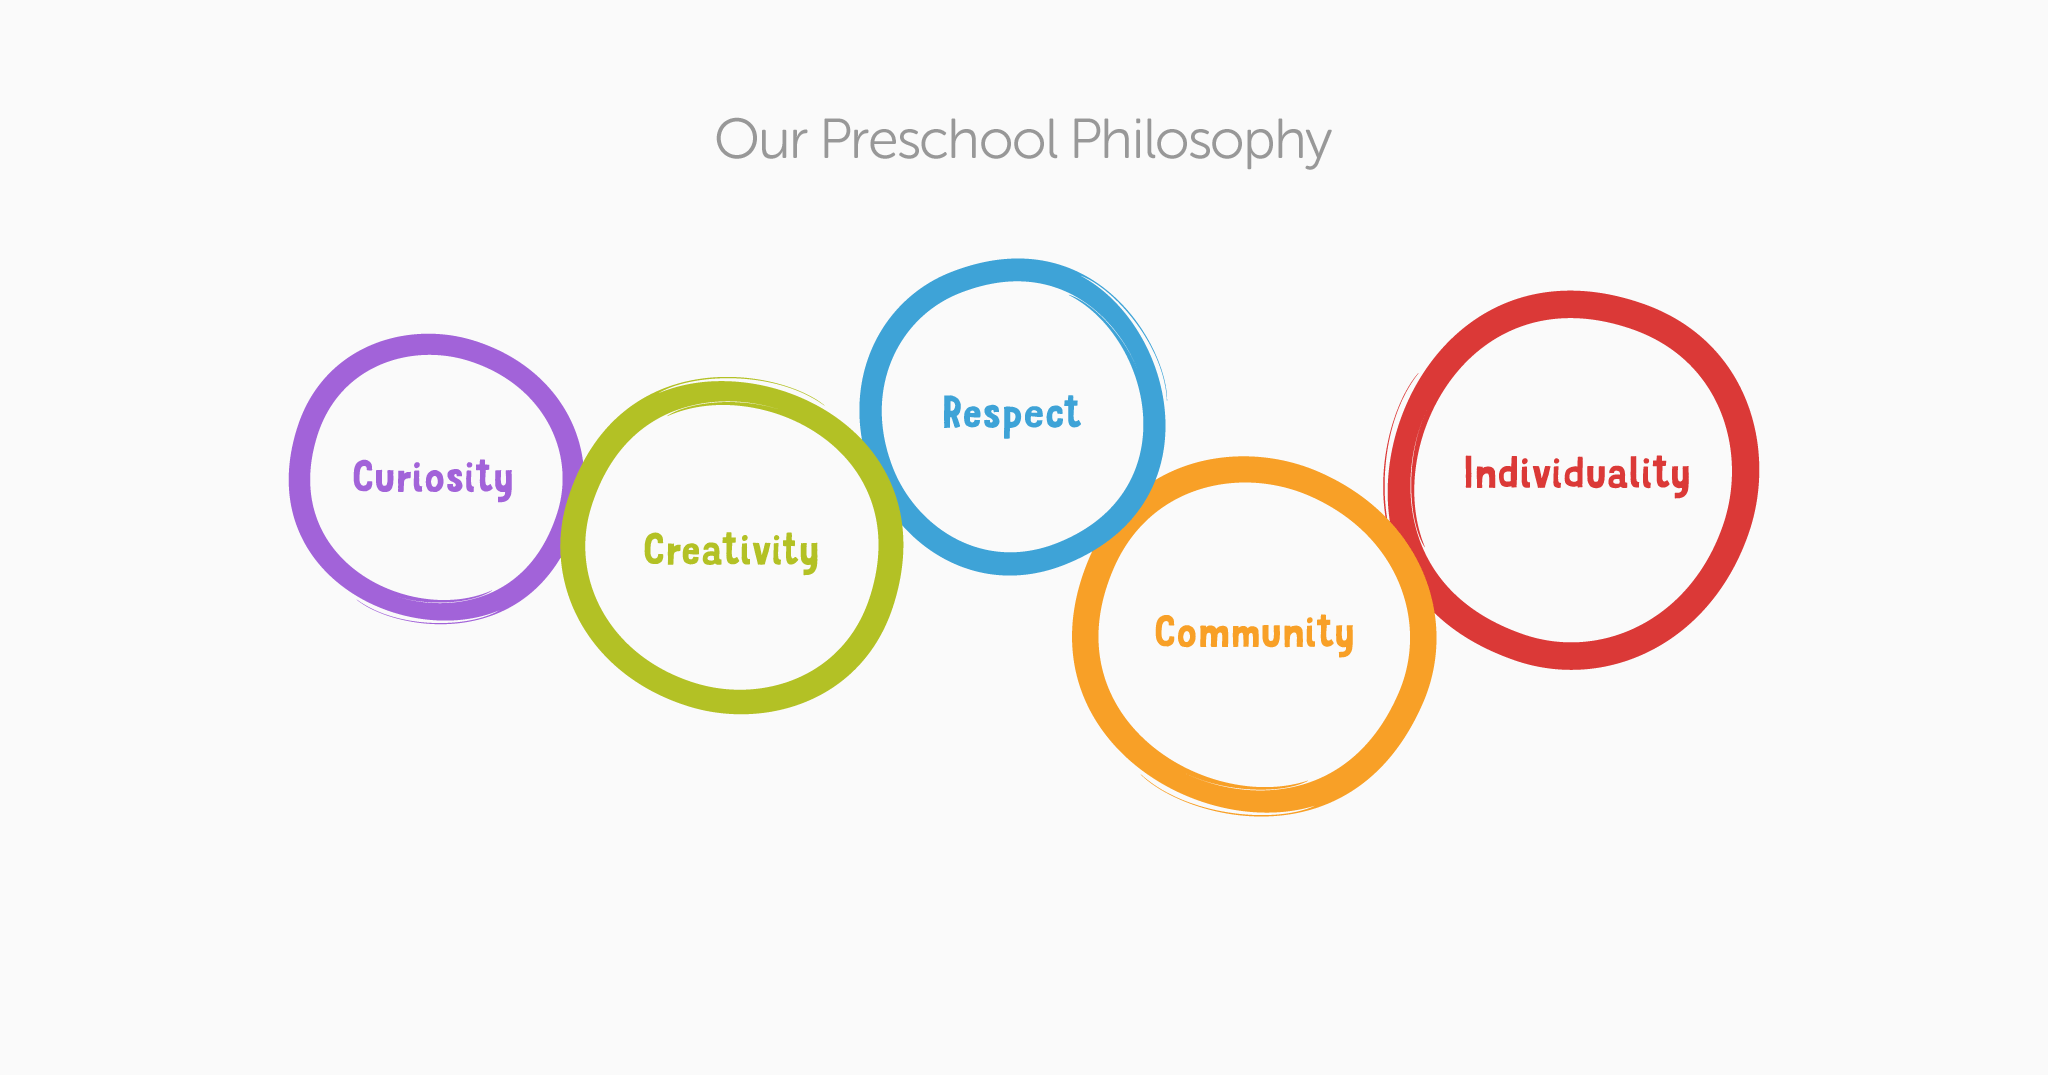 The First School philosophy